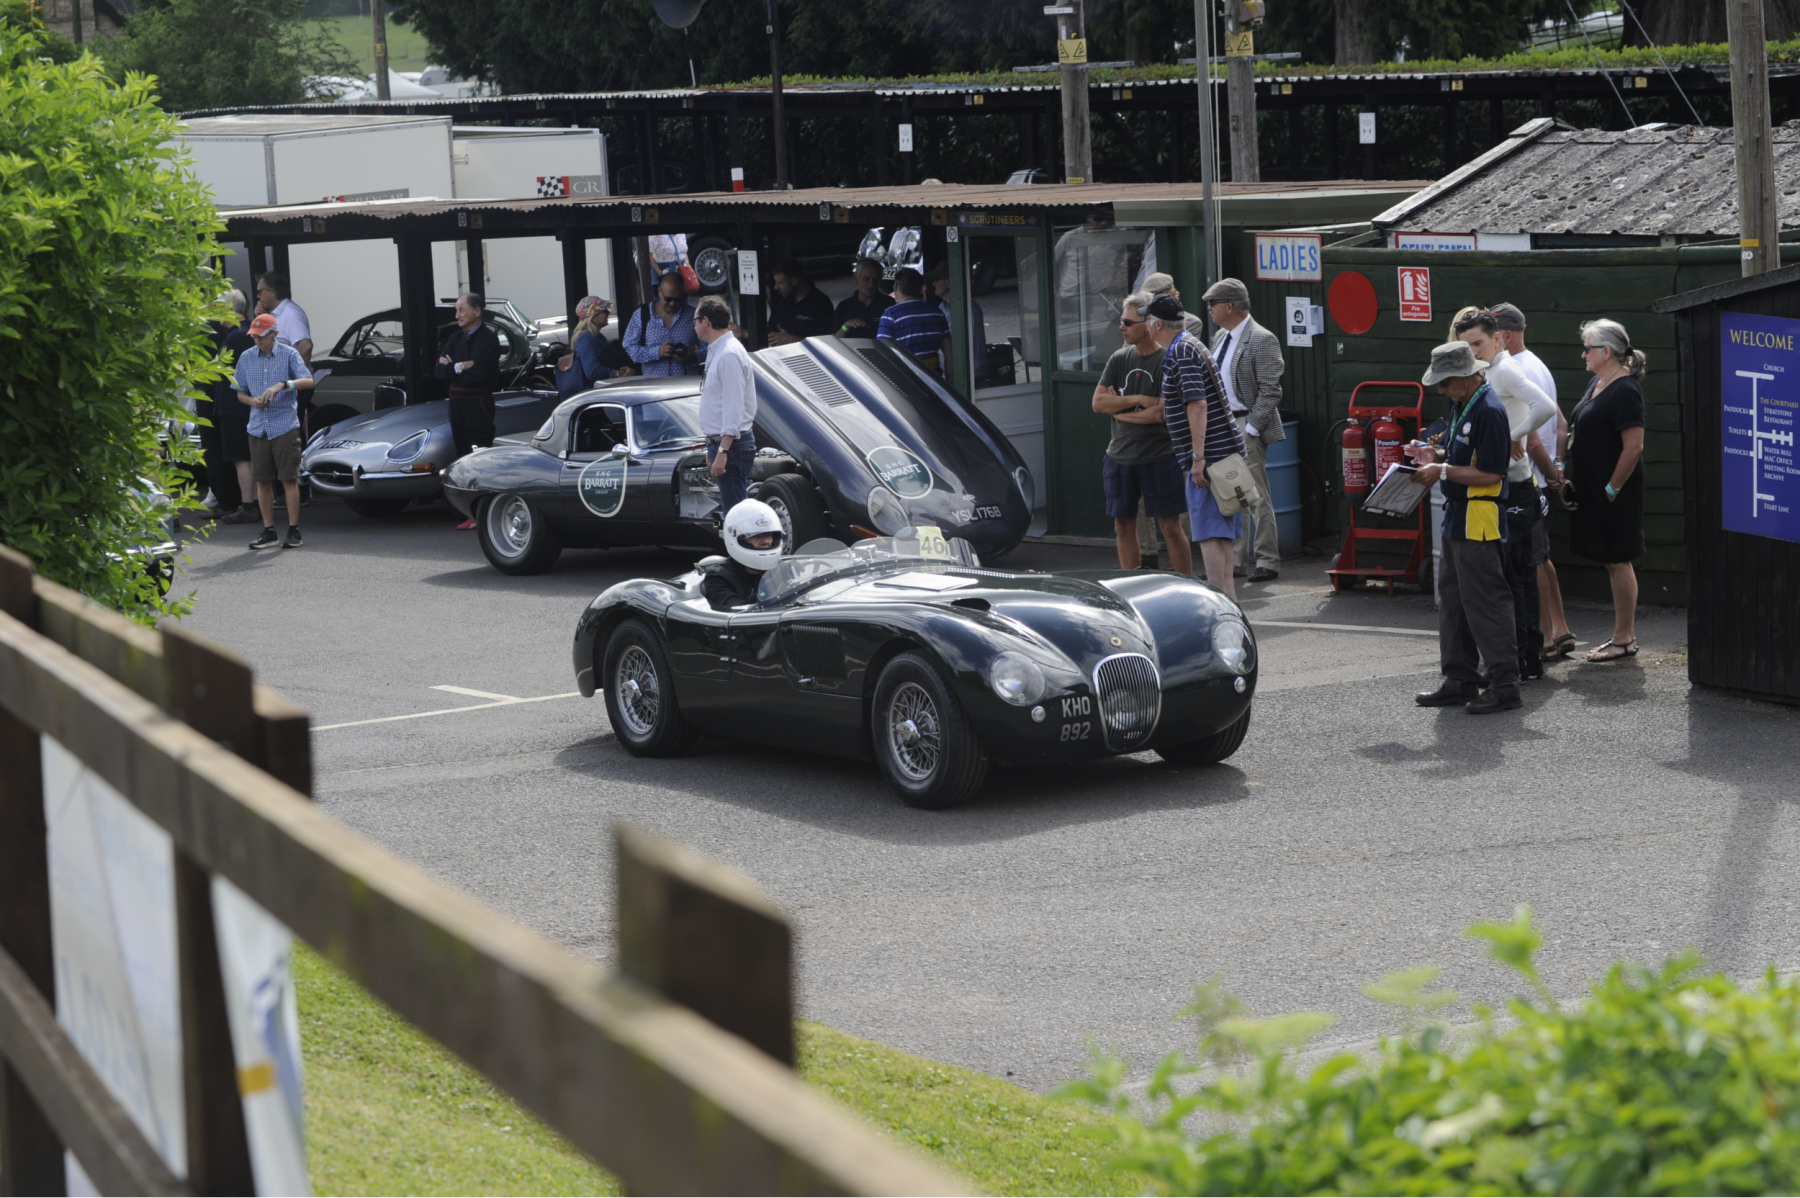 E-type-60-Saturday-photo-by-Abigail-Humphries-209